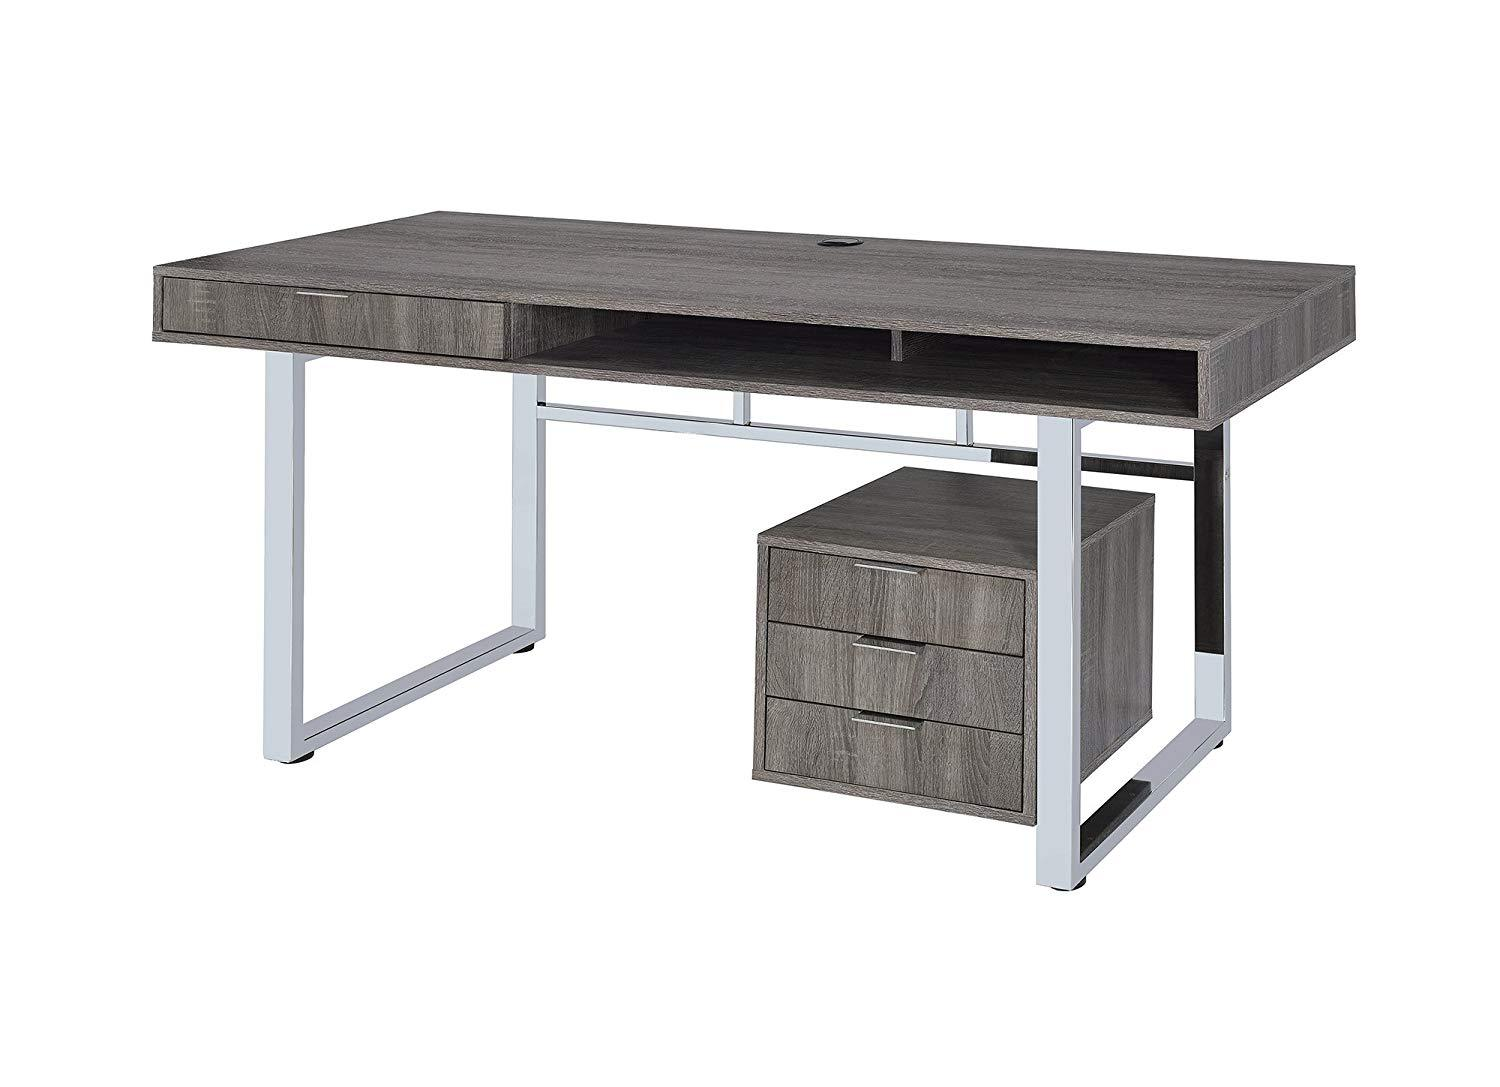 Elegant Contemporary Style Wooden Writing Desk Gray Desk With Drawers Wood Office Desk Desk